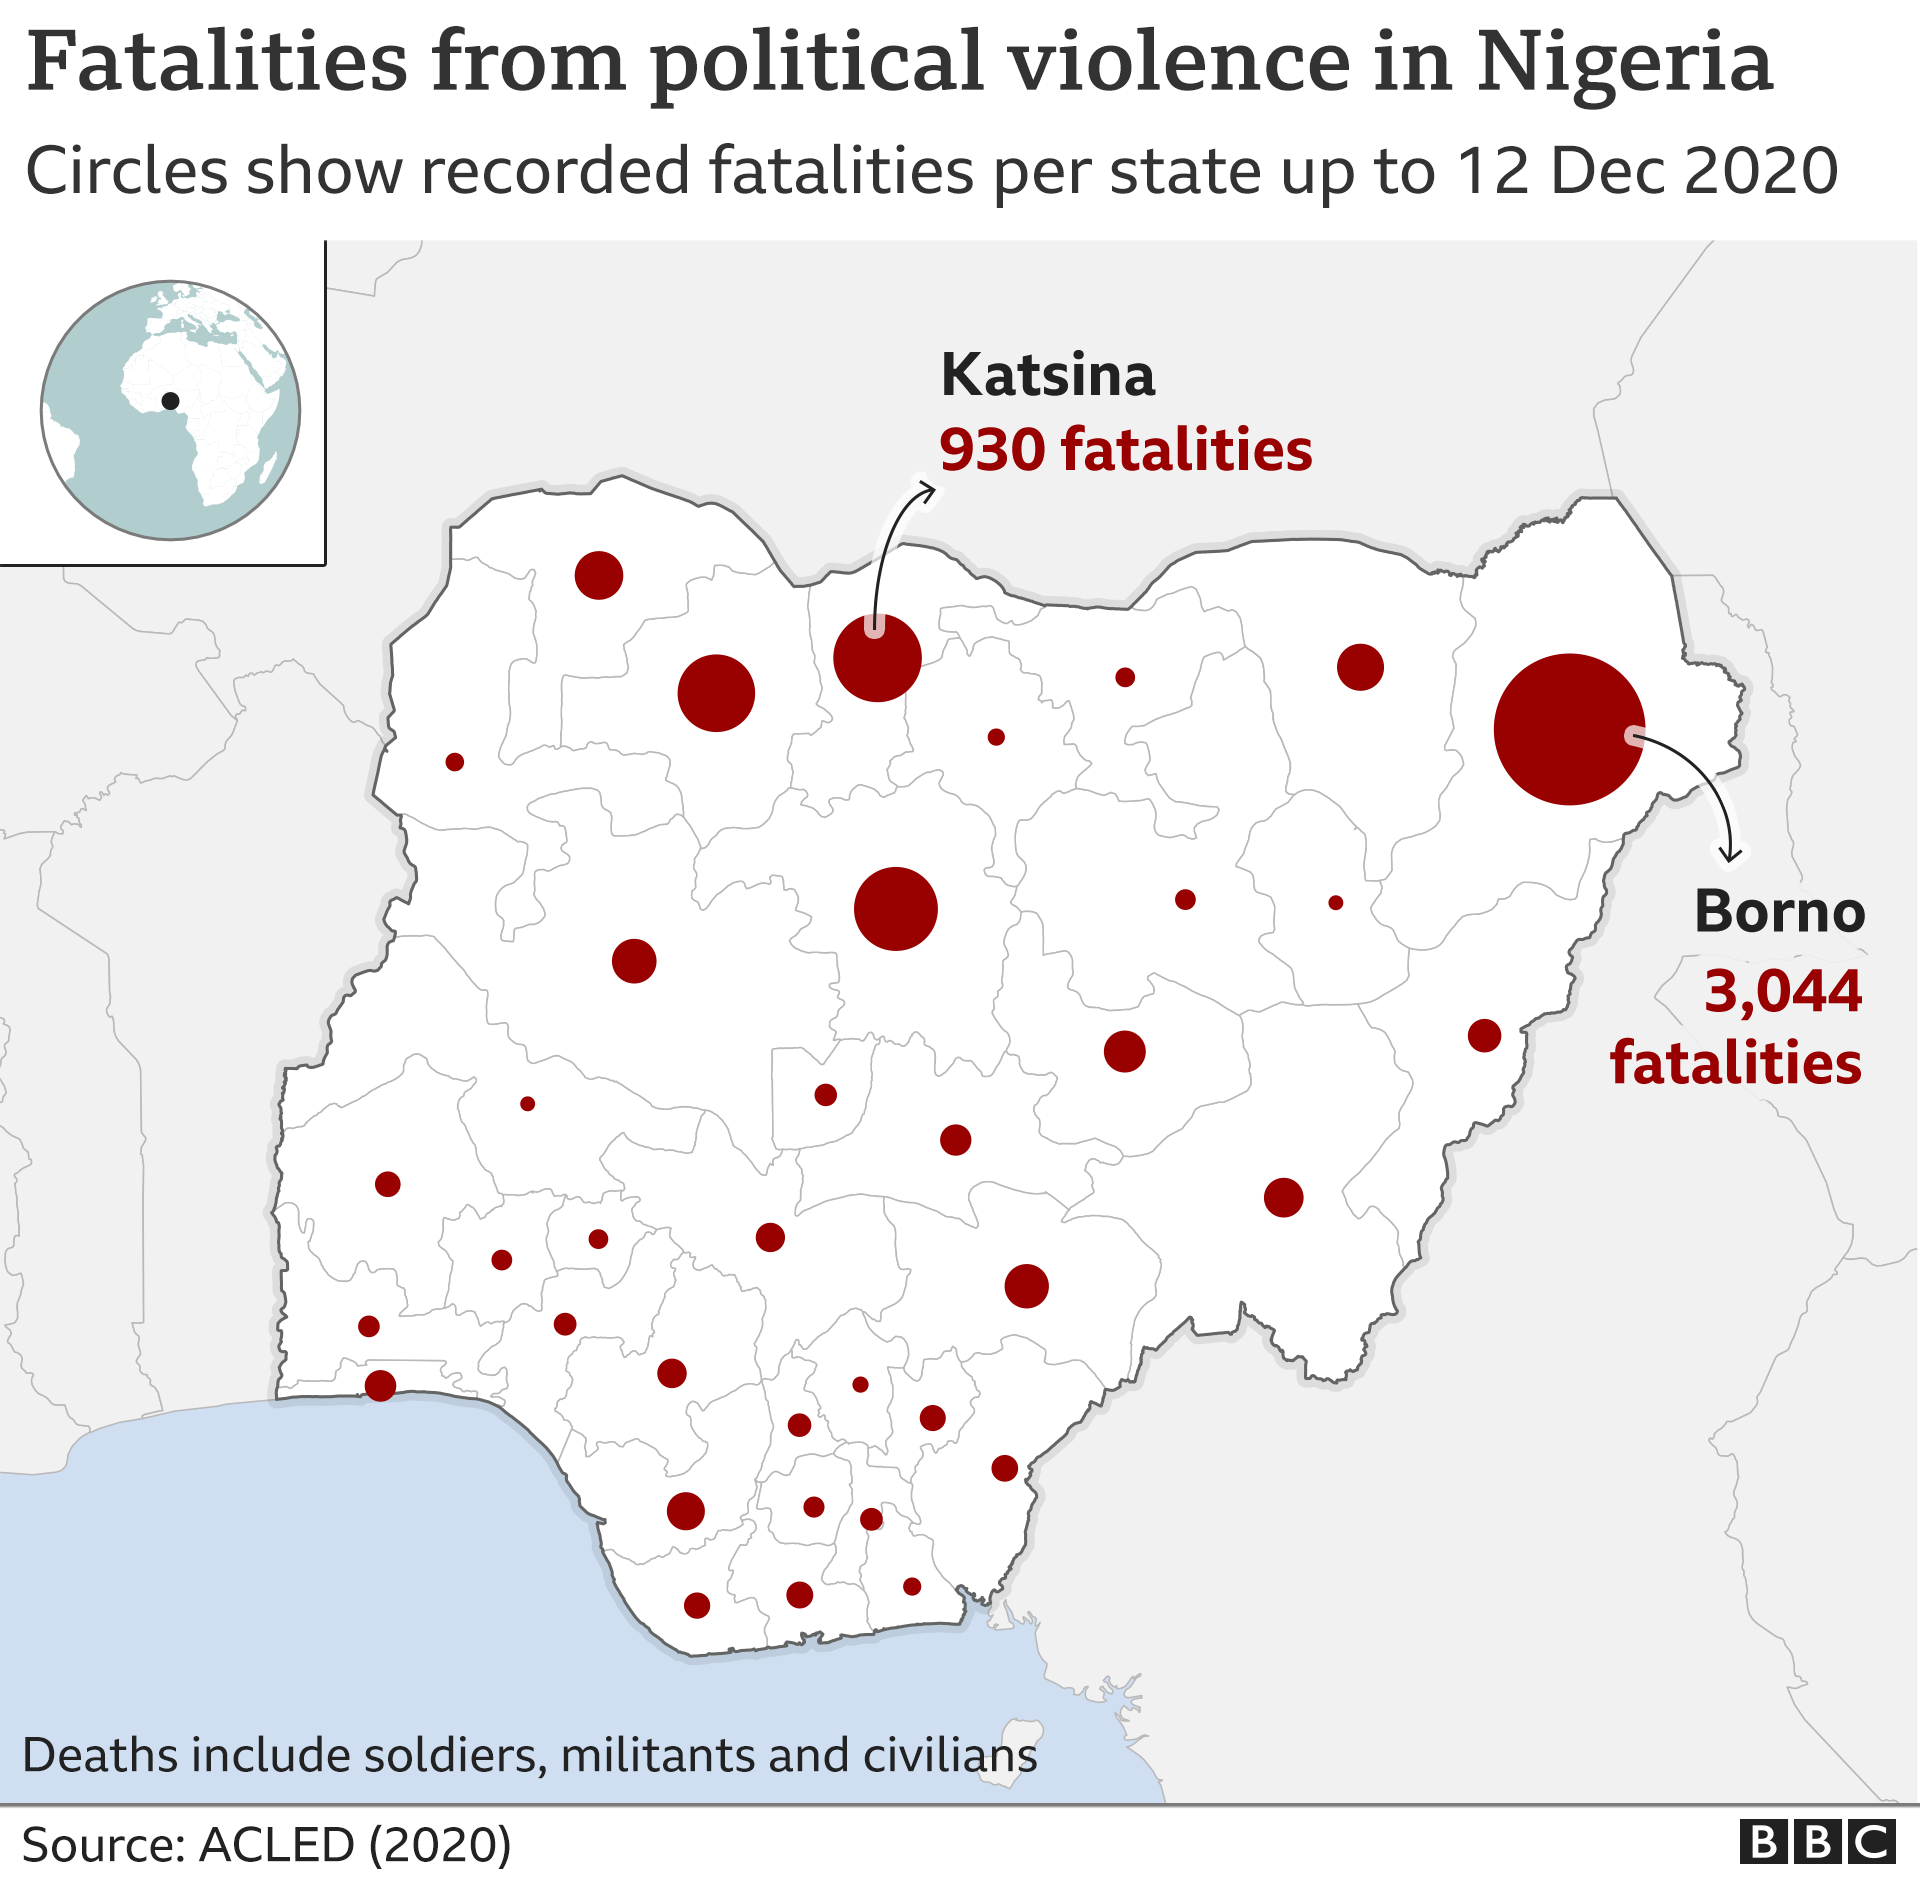 A map of Nigeria showing the concentration of deaths in each state